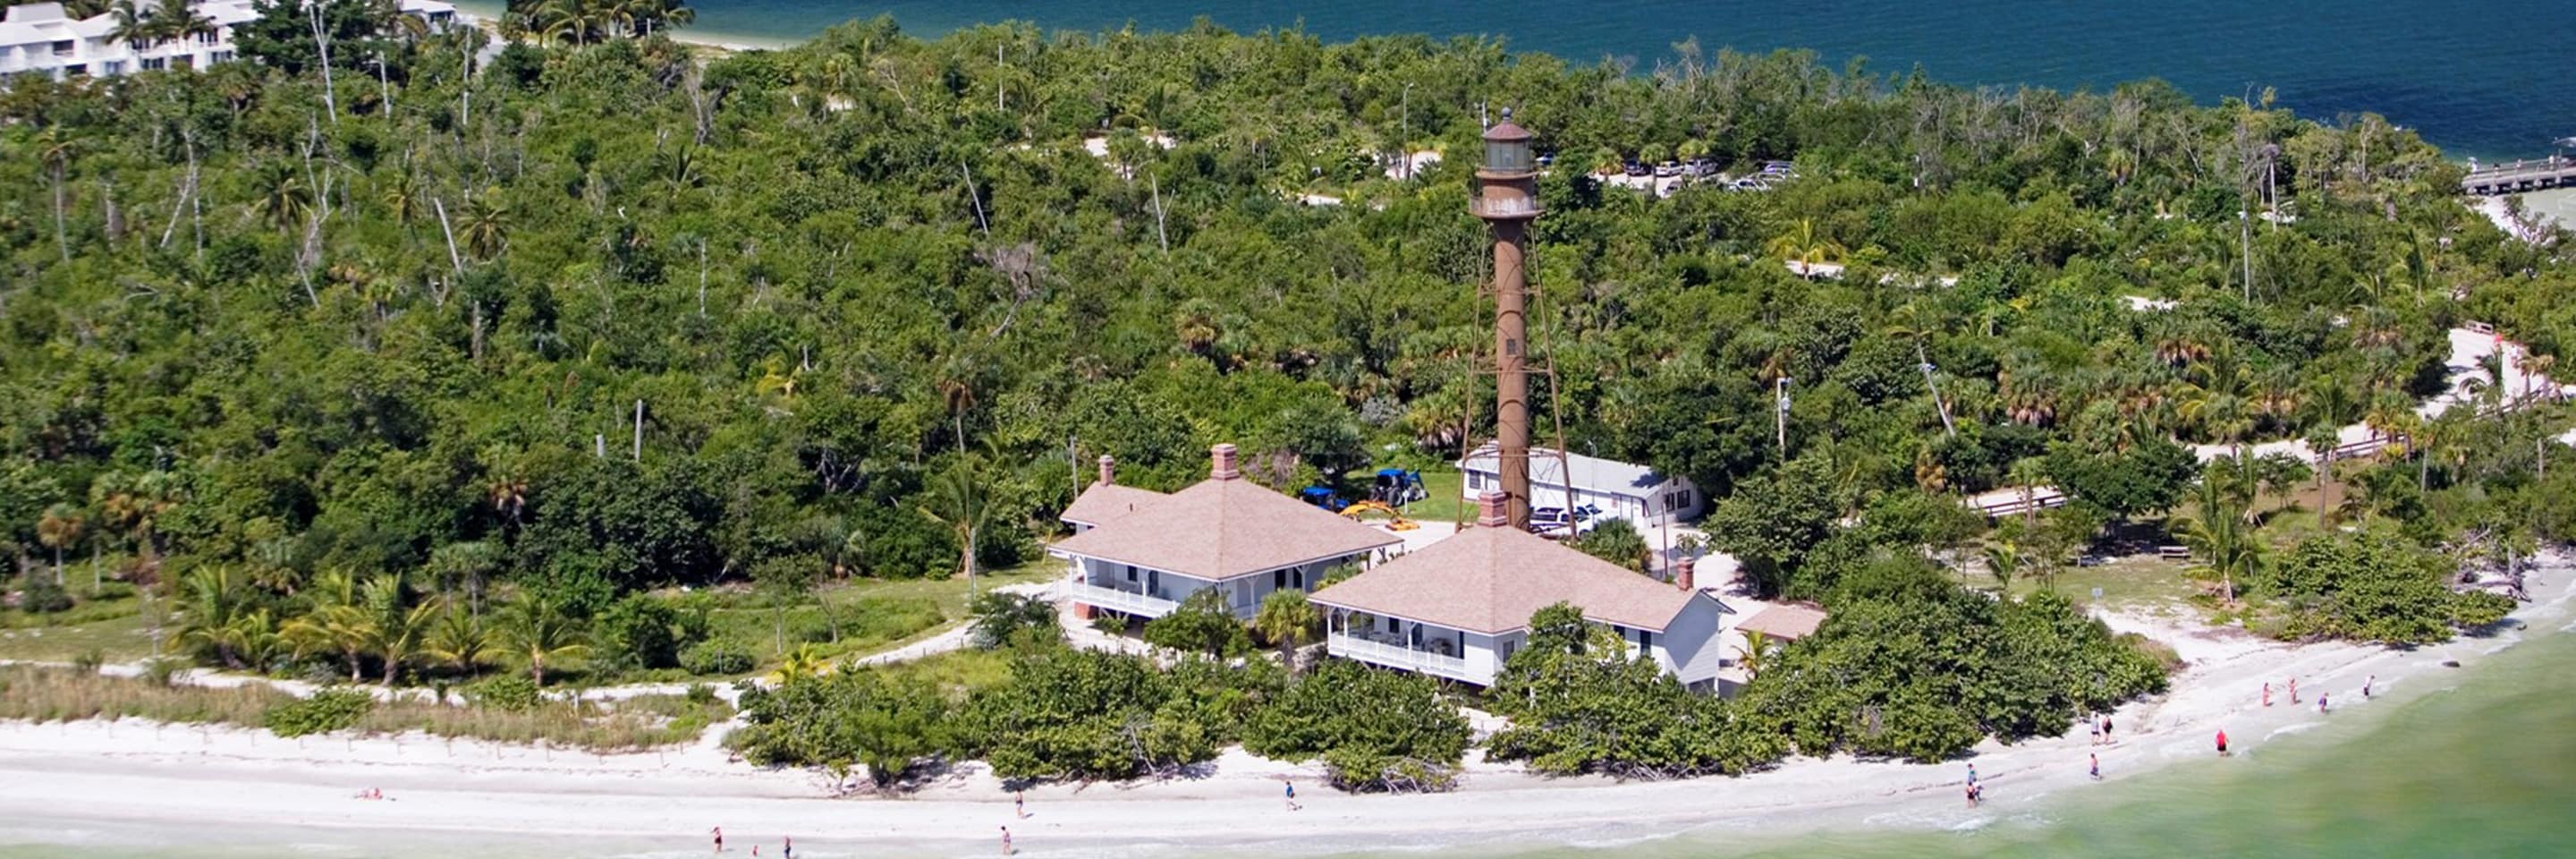 Hotels in Sanibel